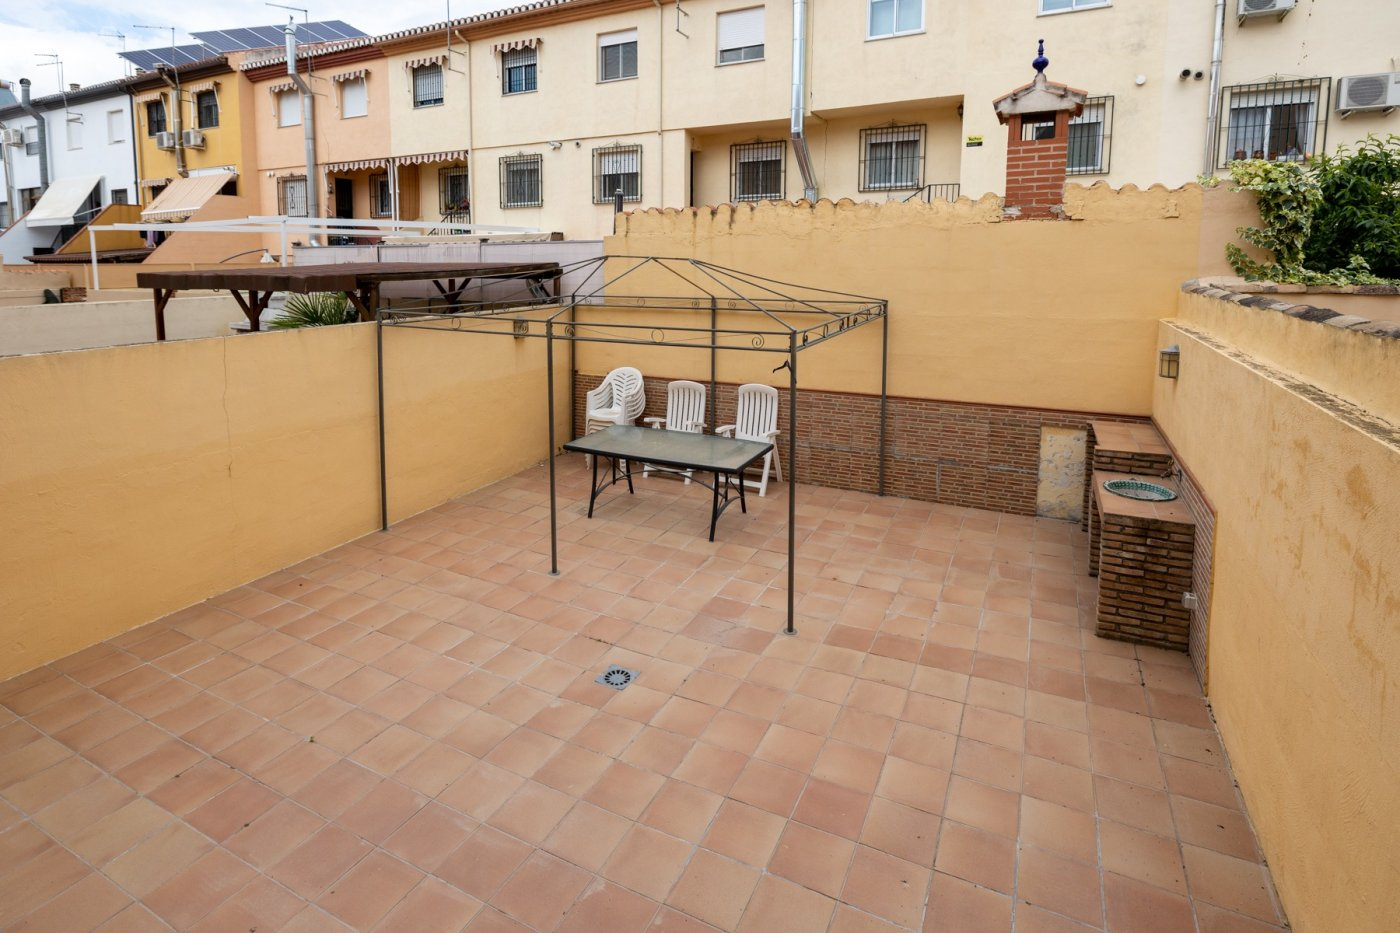 Vivienda unifamiliar en perfecto estado, con amplios espacios y gran patio privado. purchil